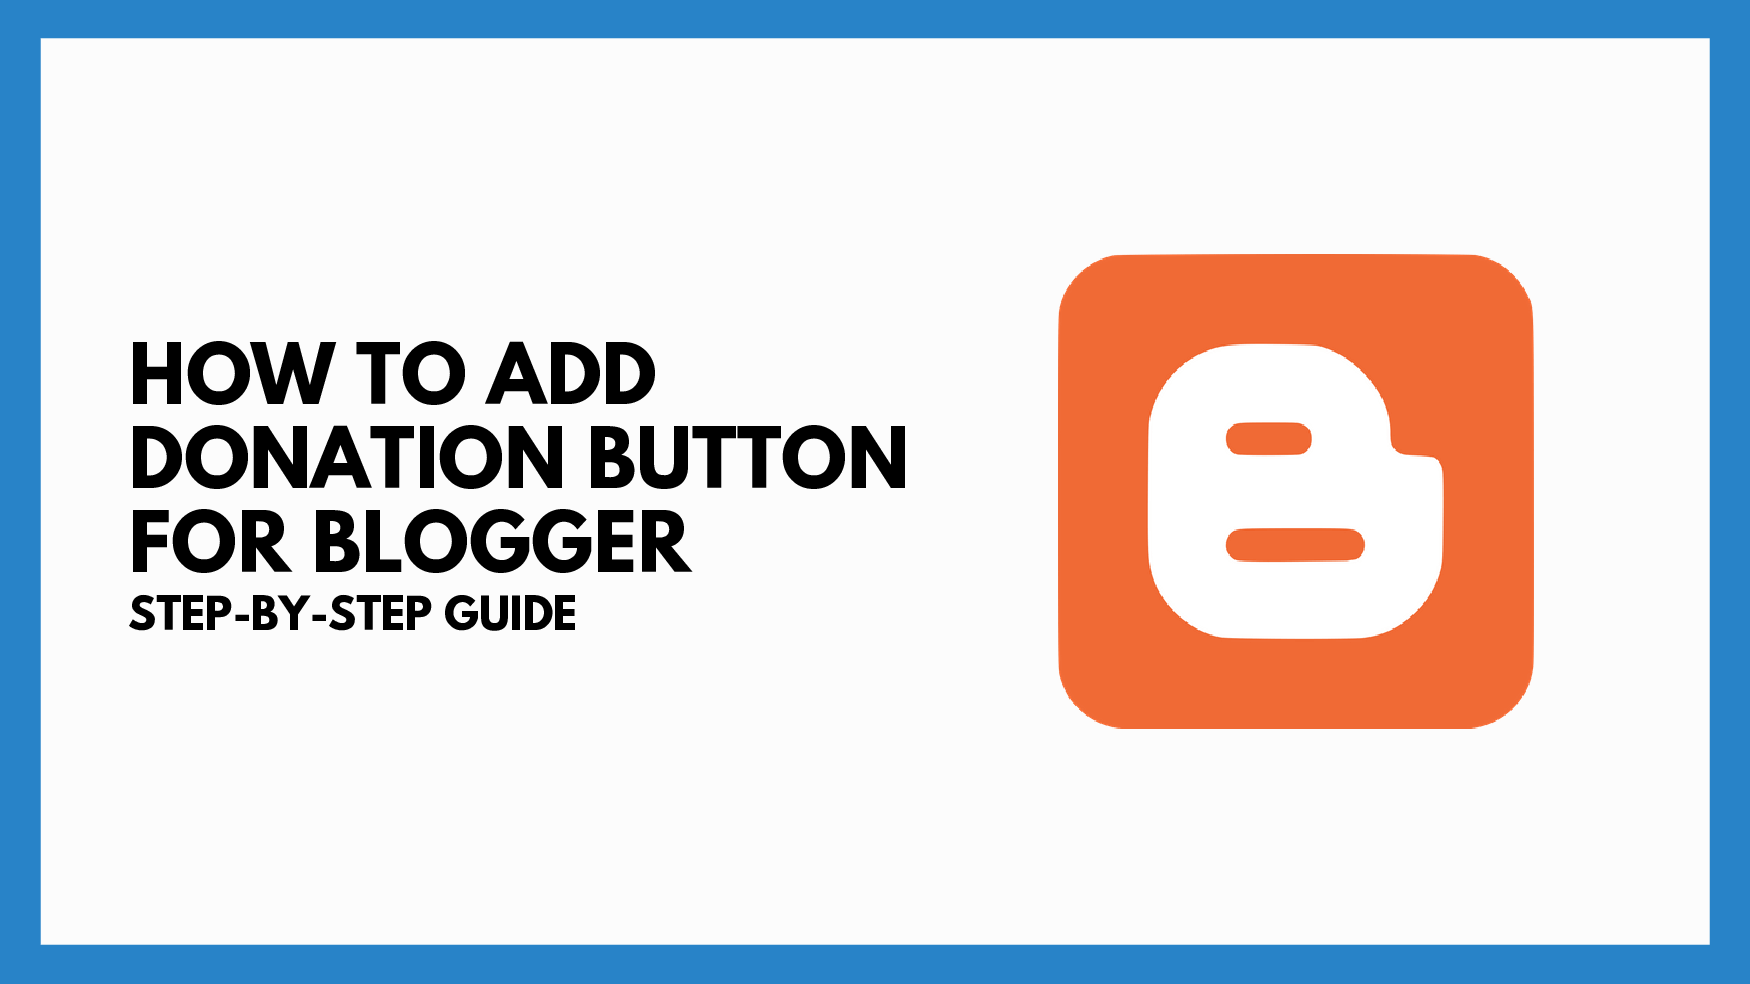 How To Add Donation Button on Blogger: Step-By-Step Guide